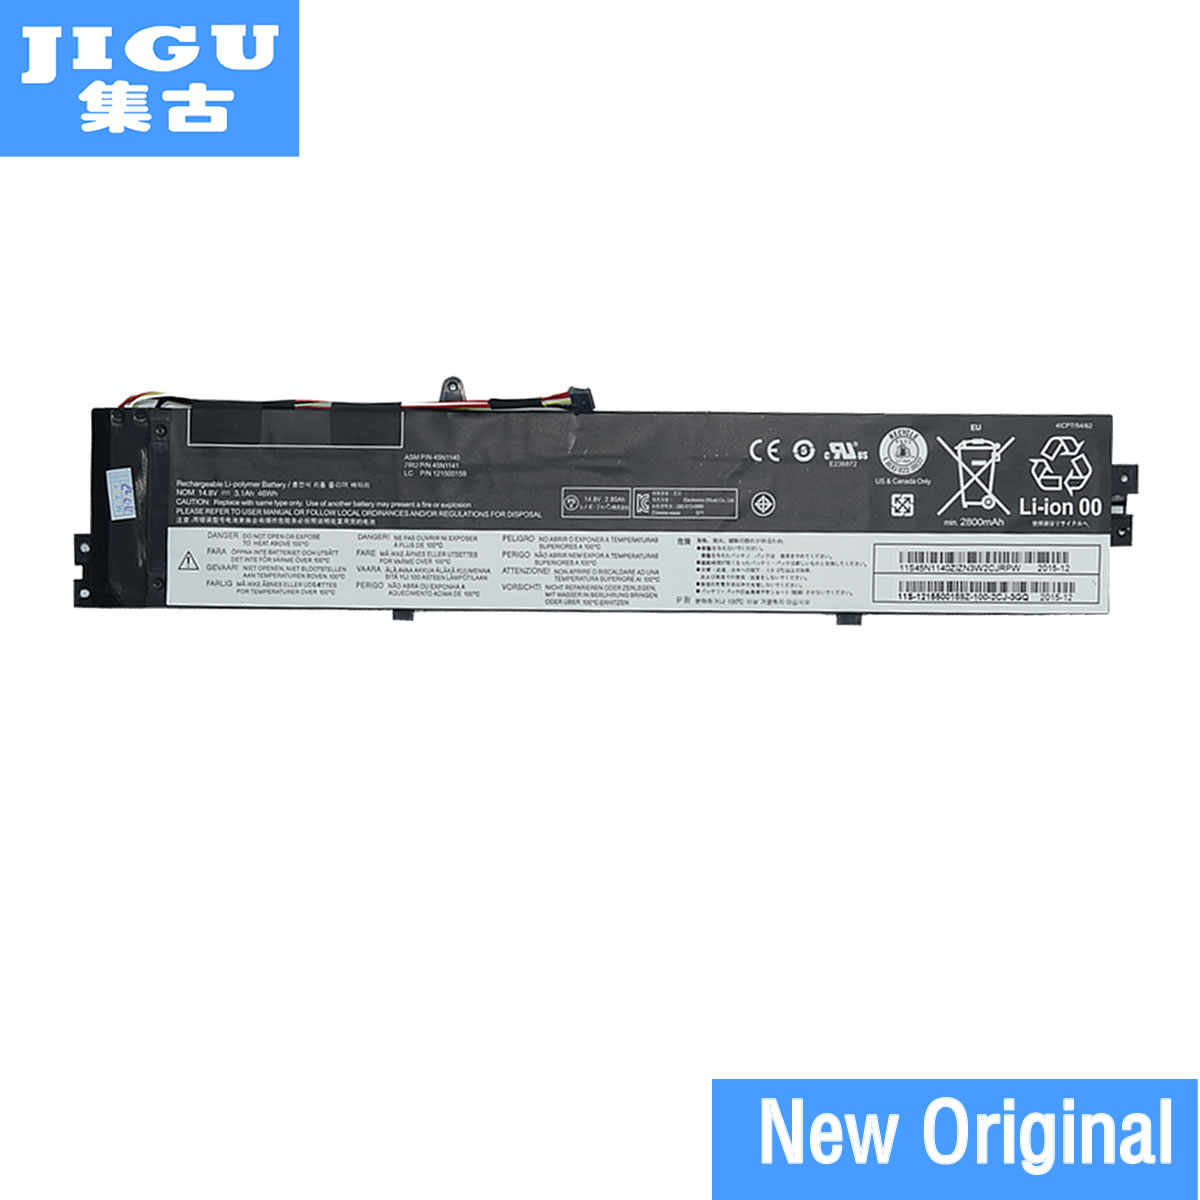 JIGU 45N1138 45N1139 45N1140 45N1141 121500158 Original Laptop Battery For Lenovo For ThinkPad S431 S440 V4400u S3 S5